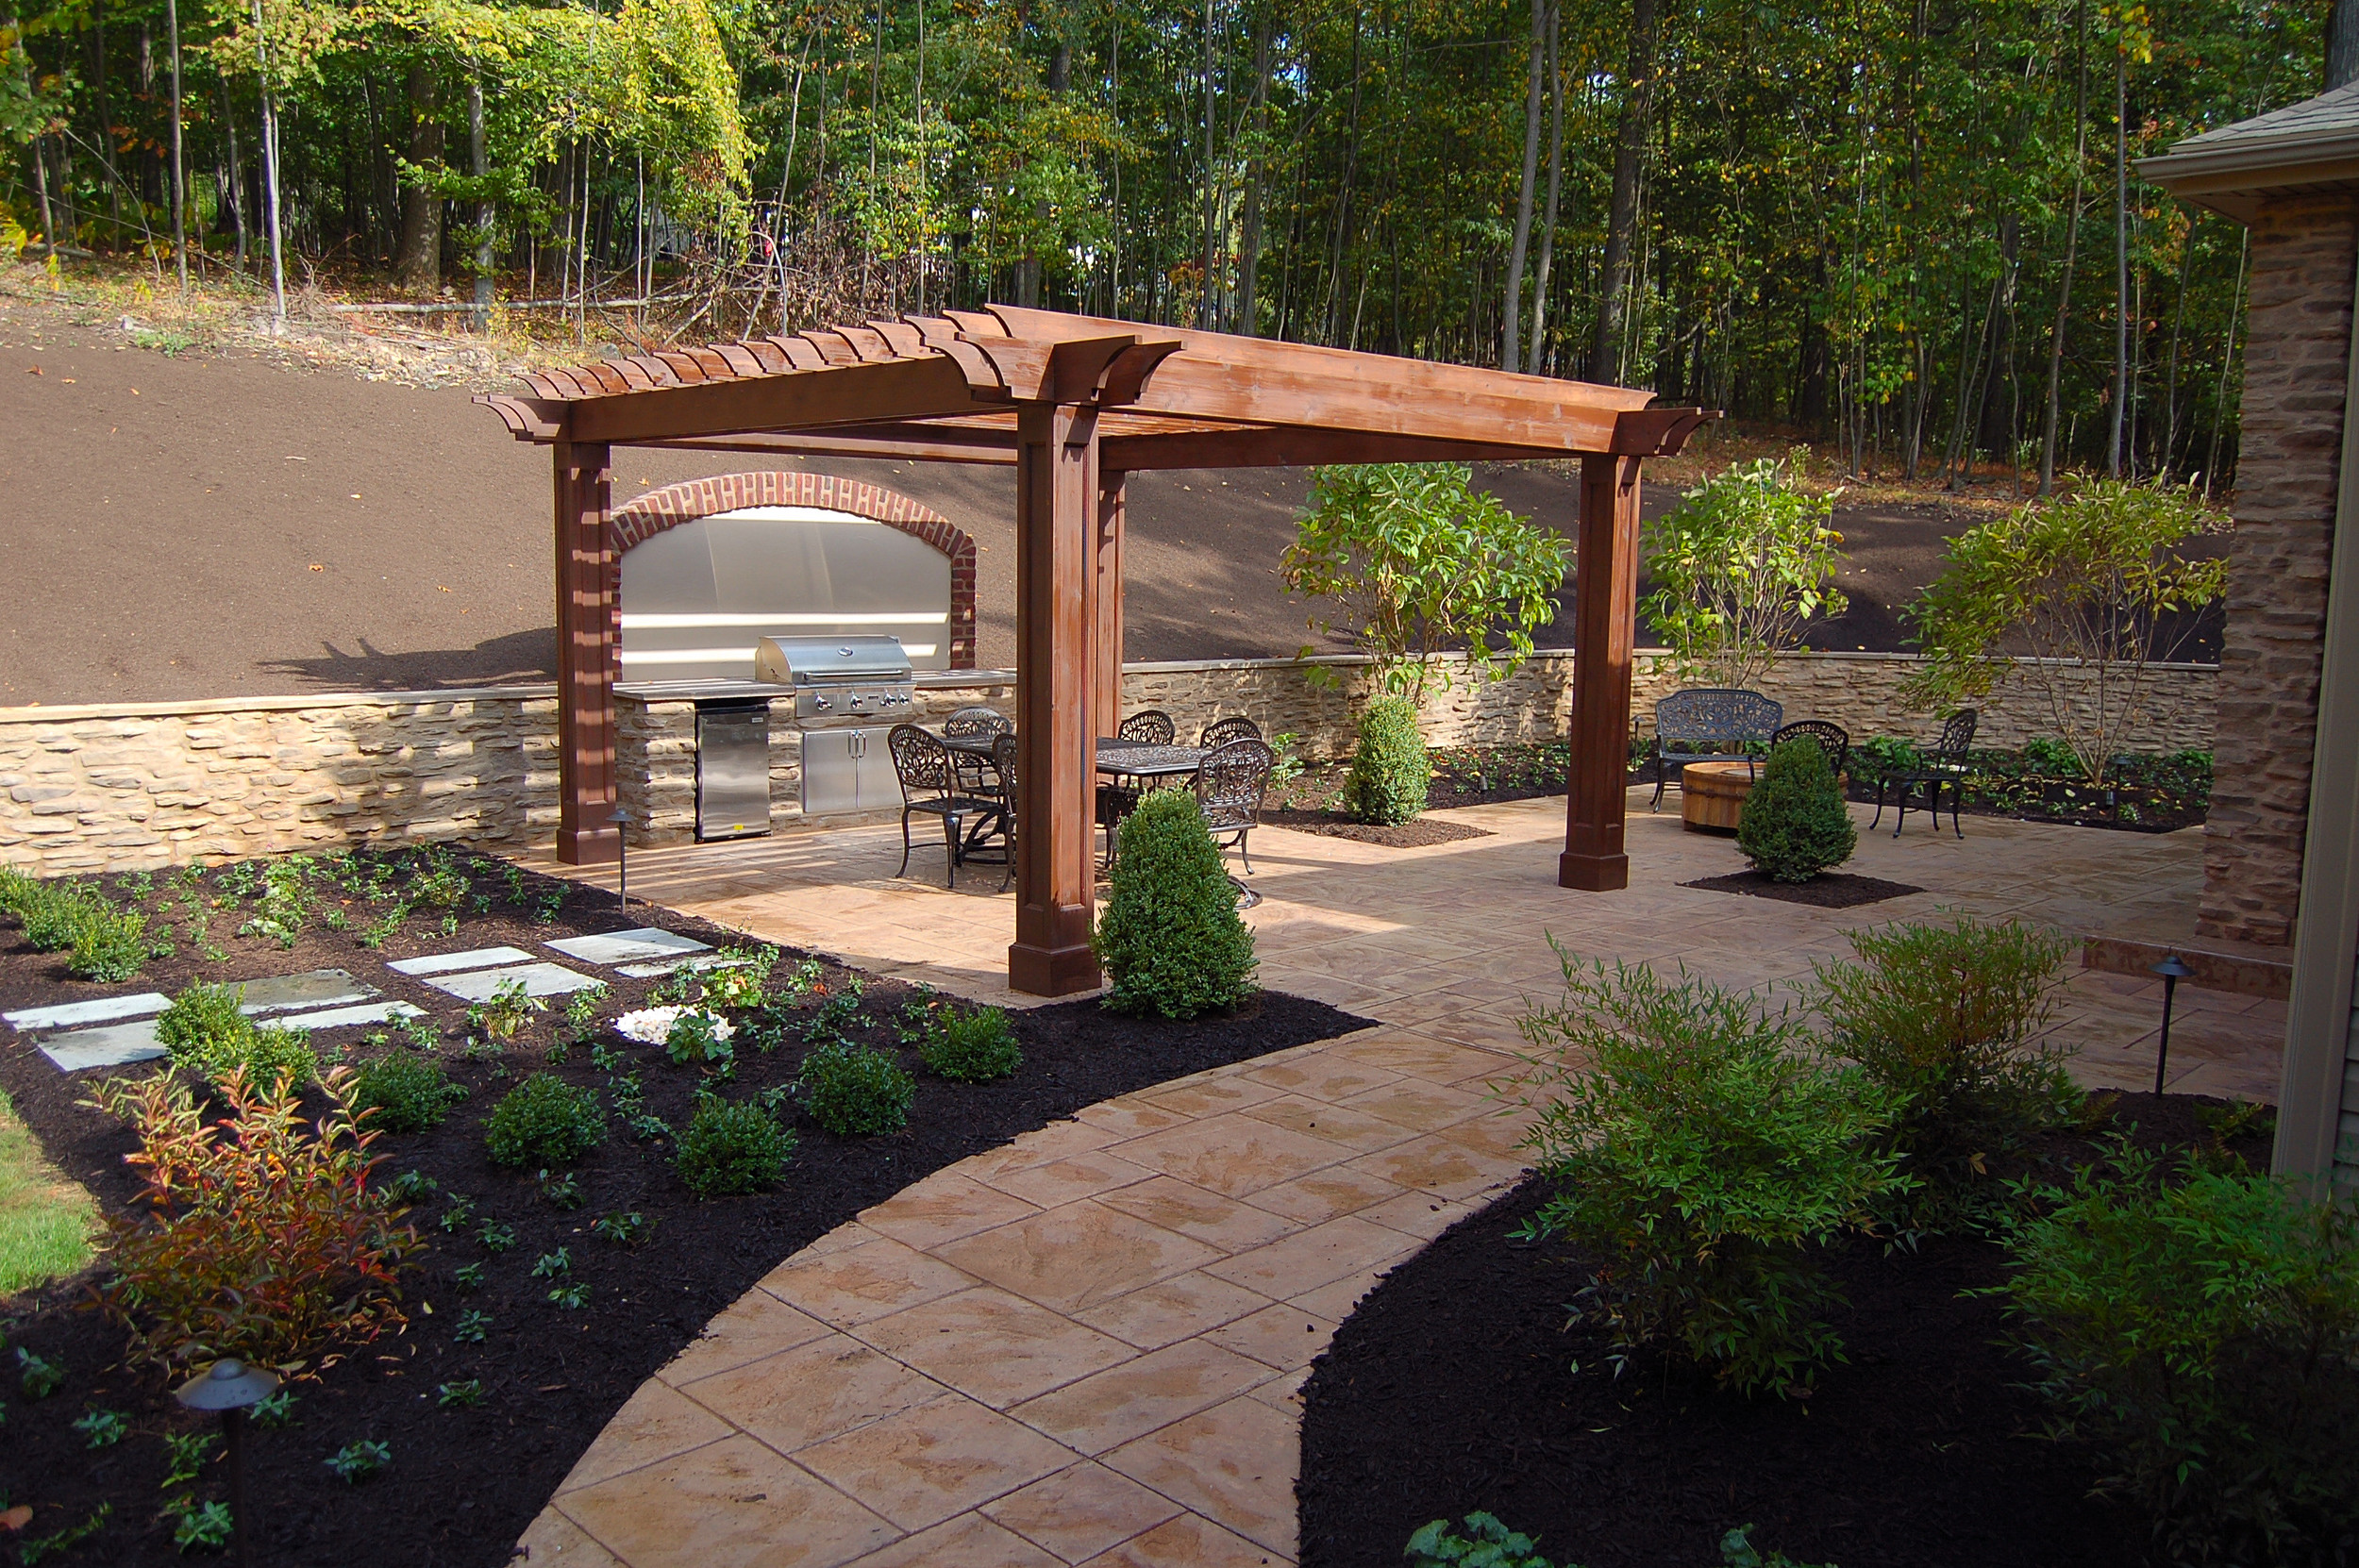 Traditional garden in Harrisburg Pa. with a pergola, outdoor kitchen, stone walls and an outdoor fireplace.